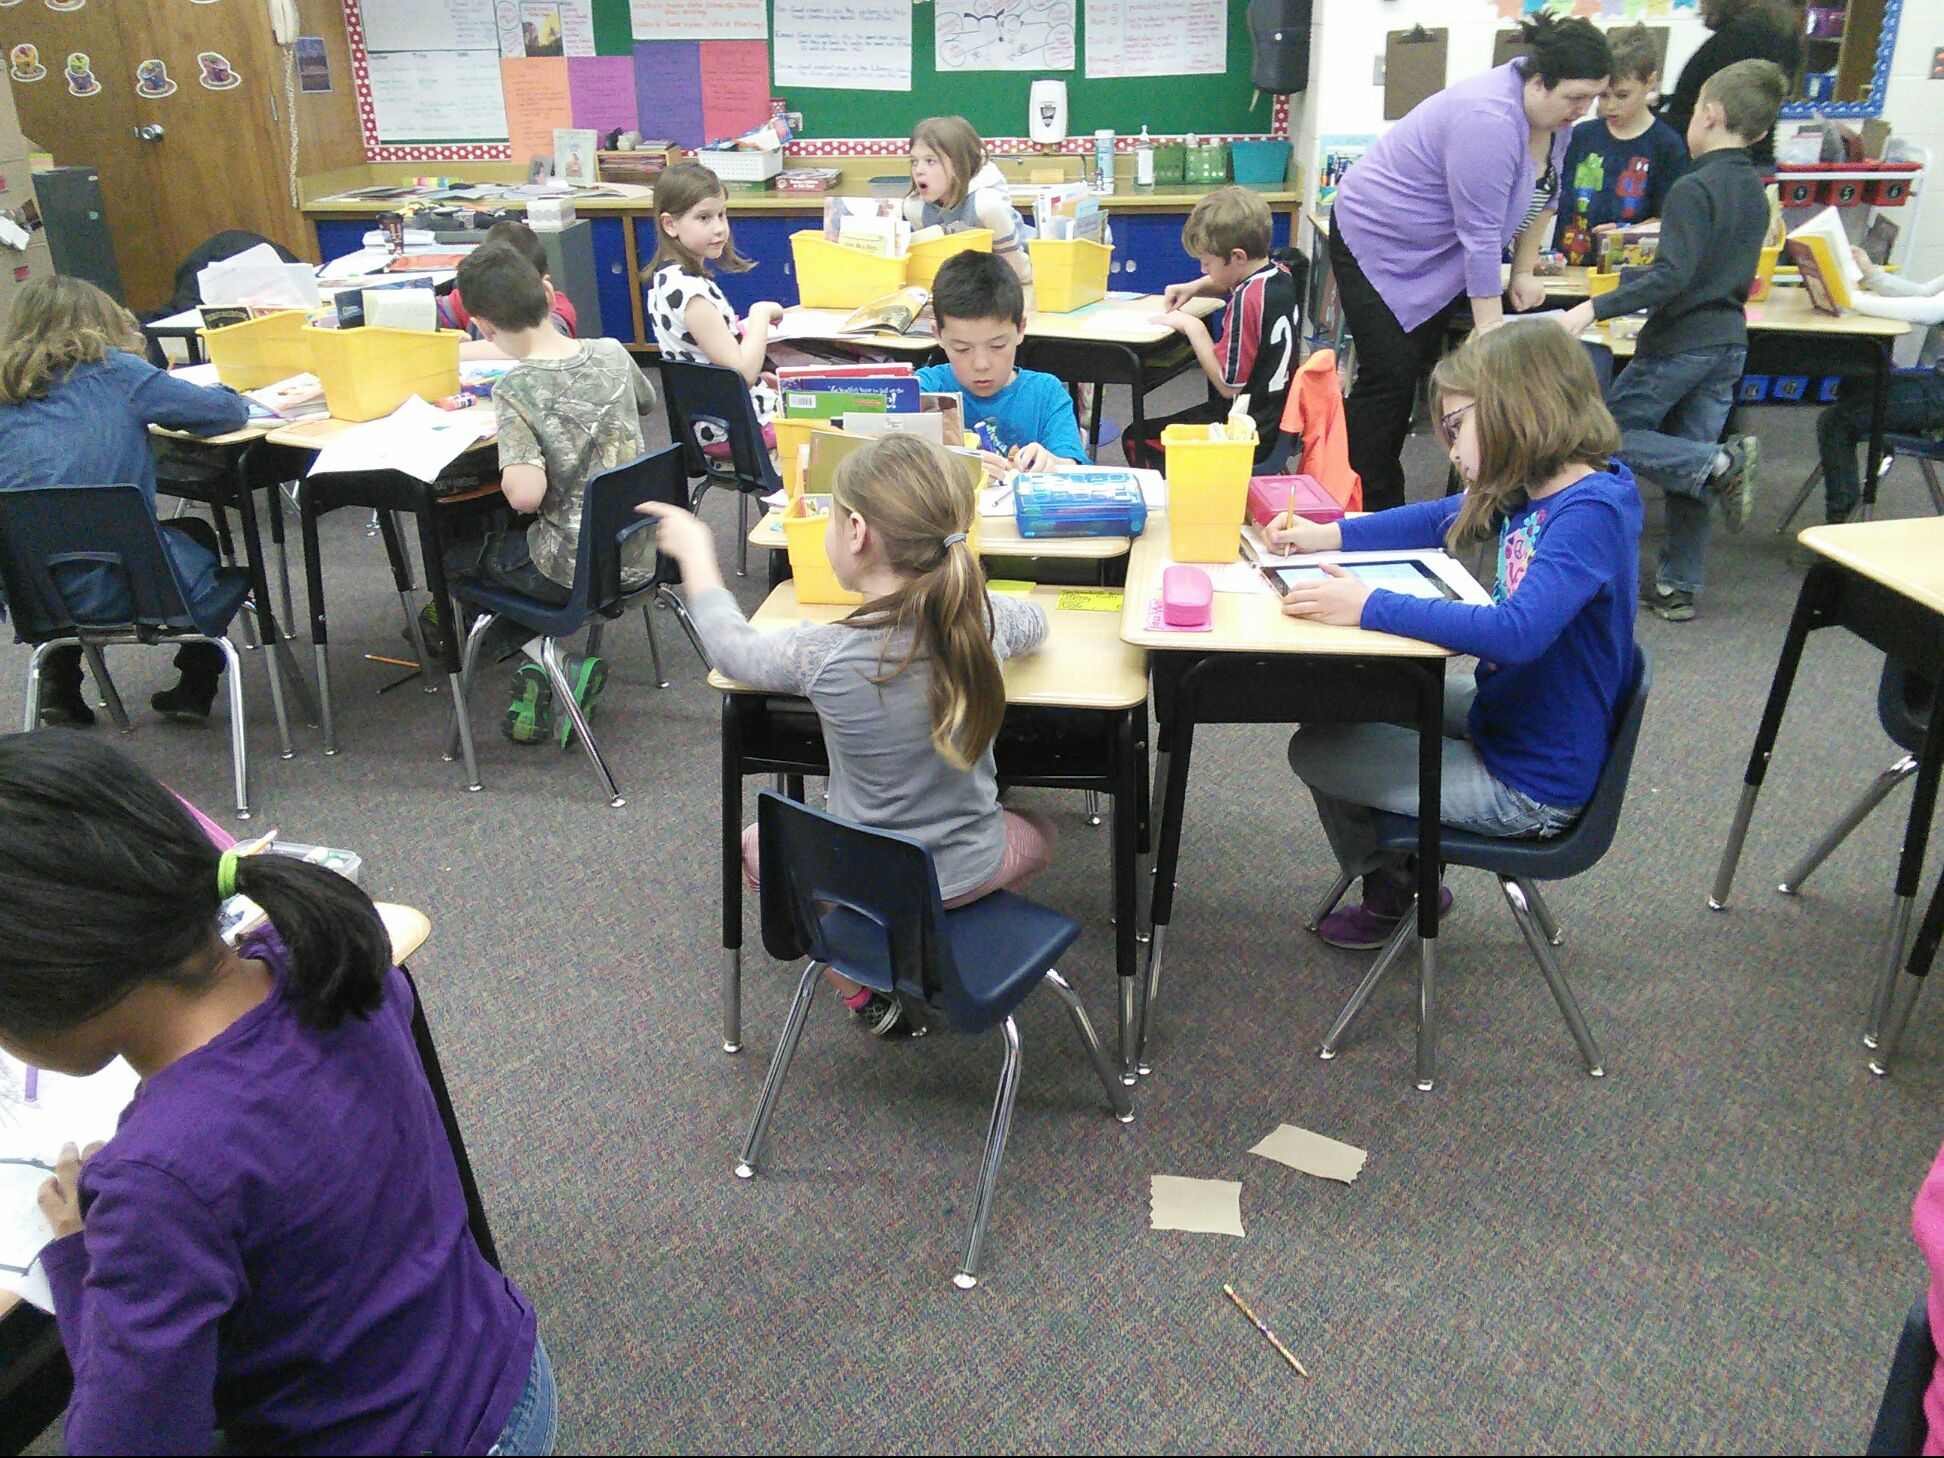 Elementary Classrooms Technology Use : Adel elementary classroom visits april th adm